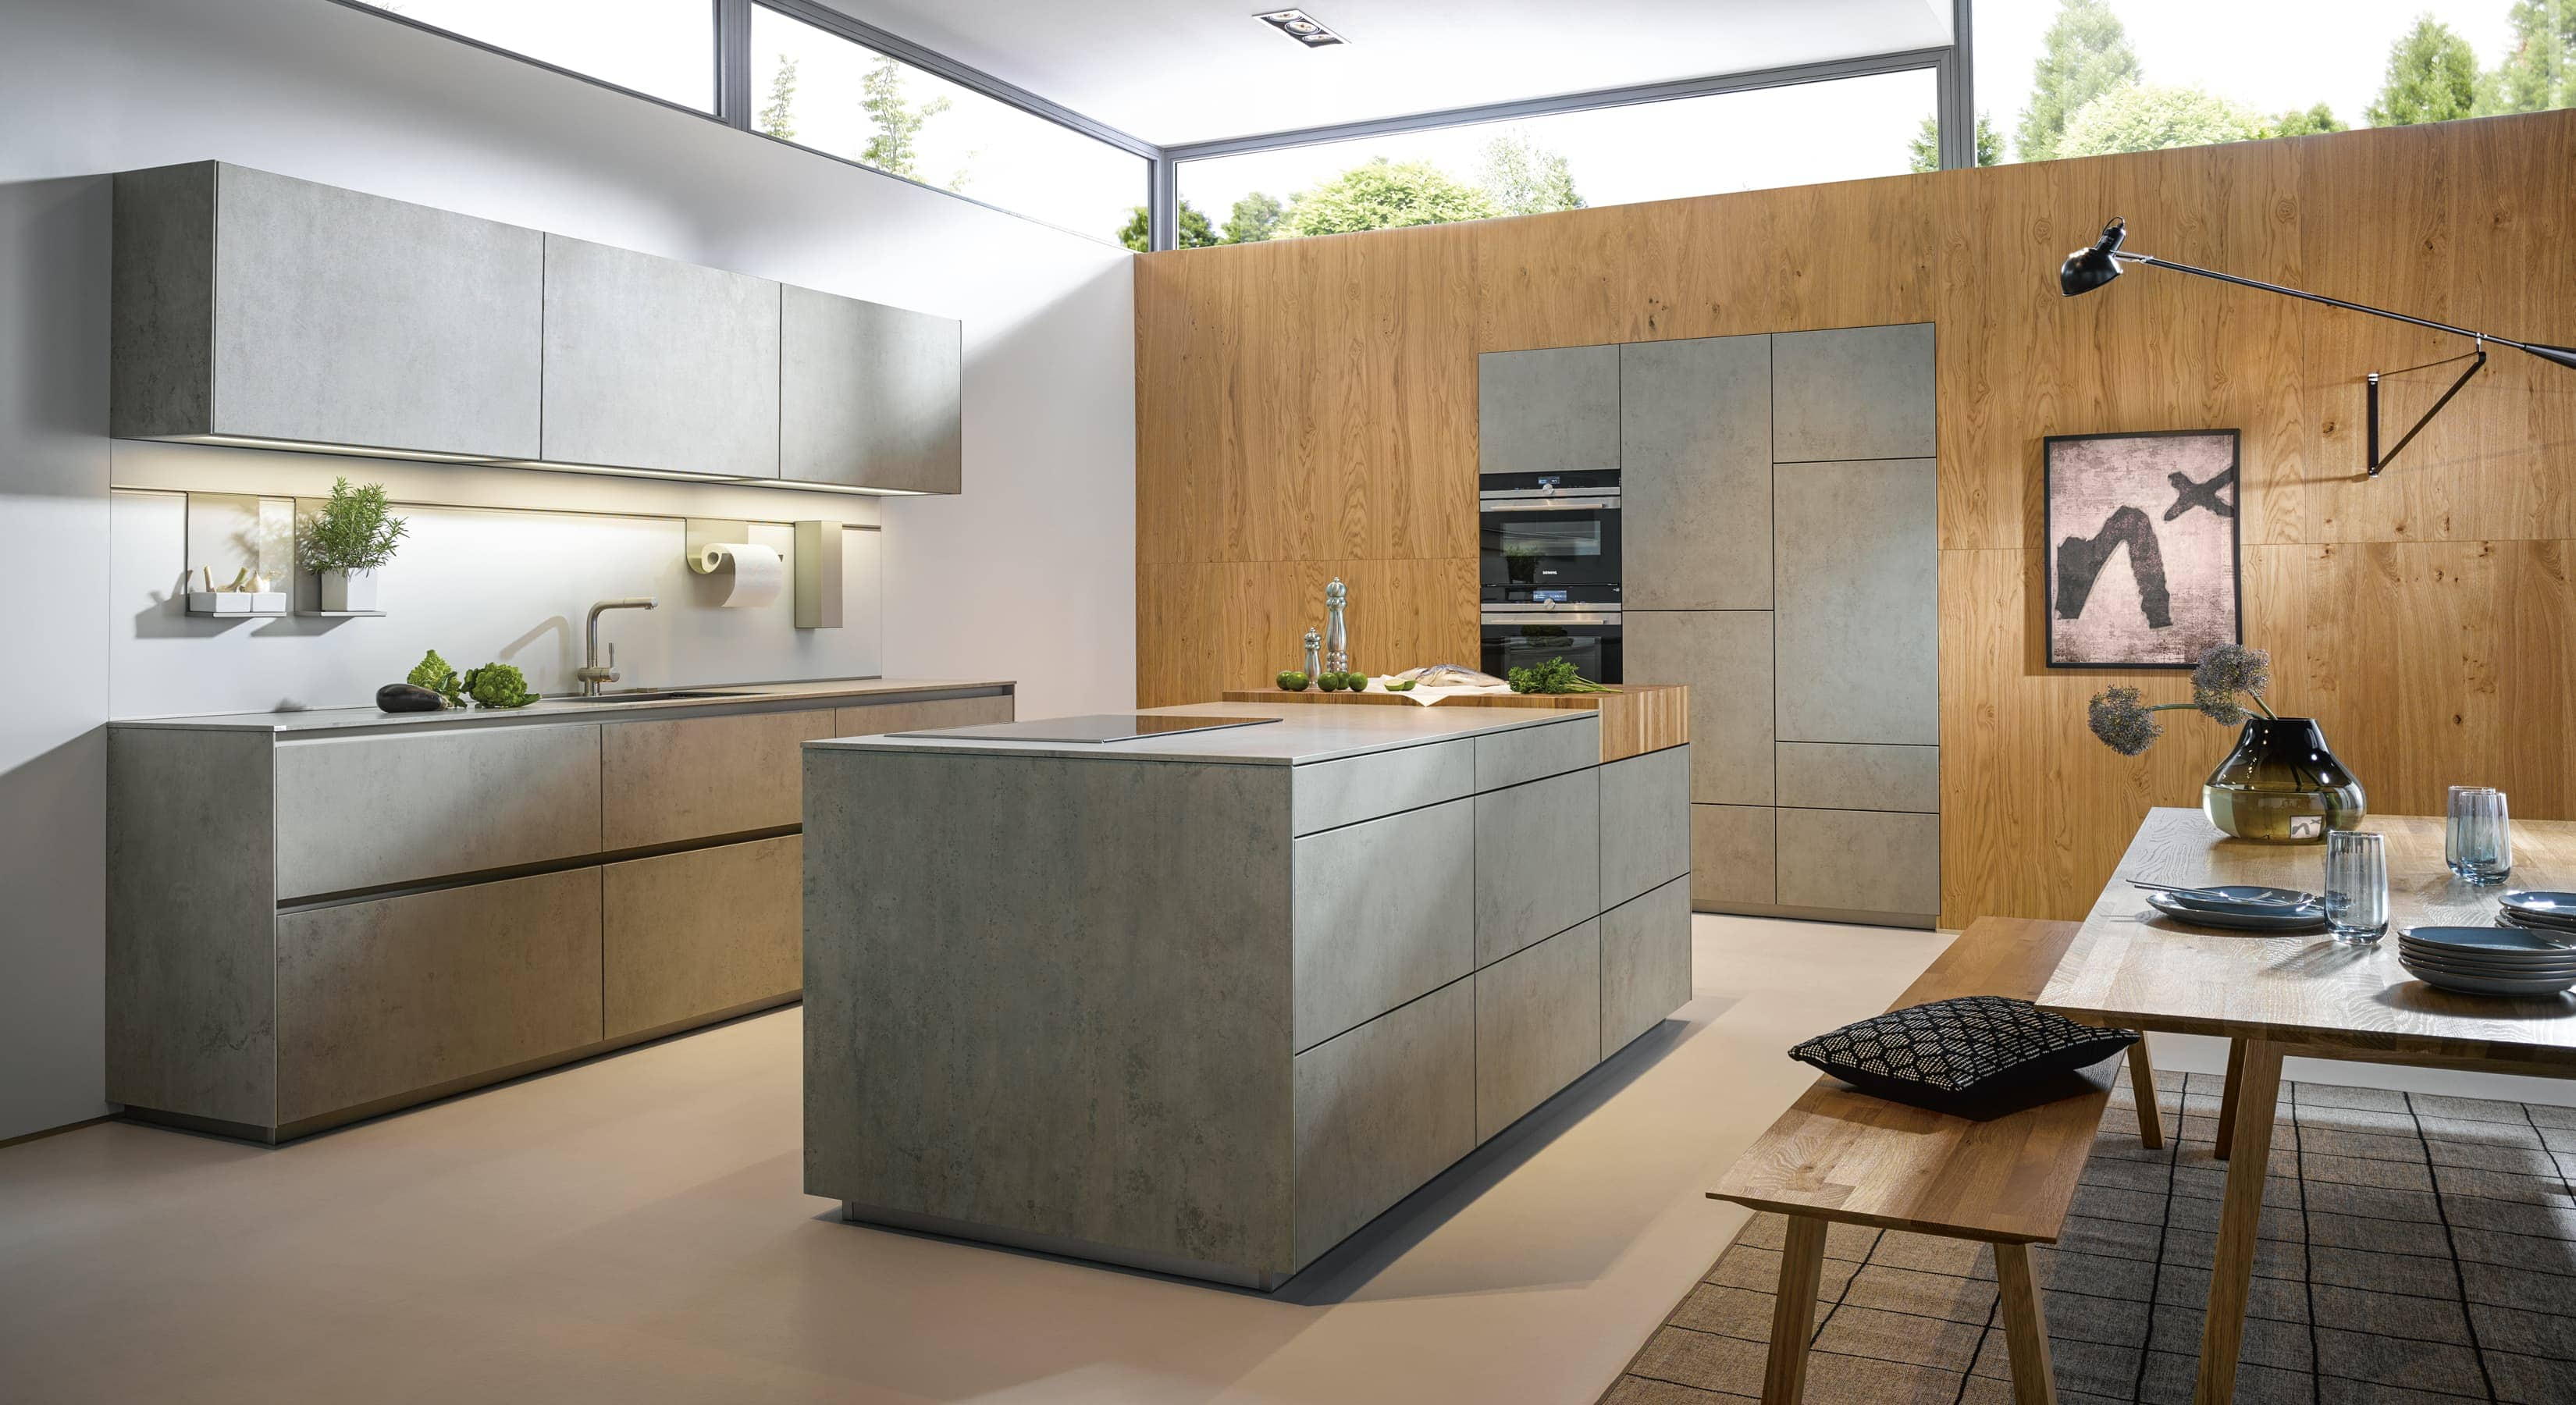 Contemporary cement and wood kitchen concept